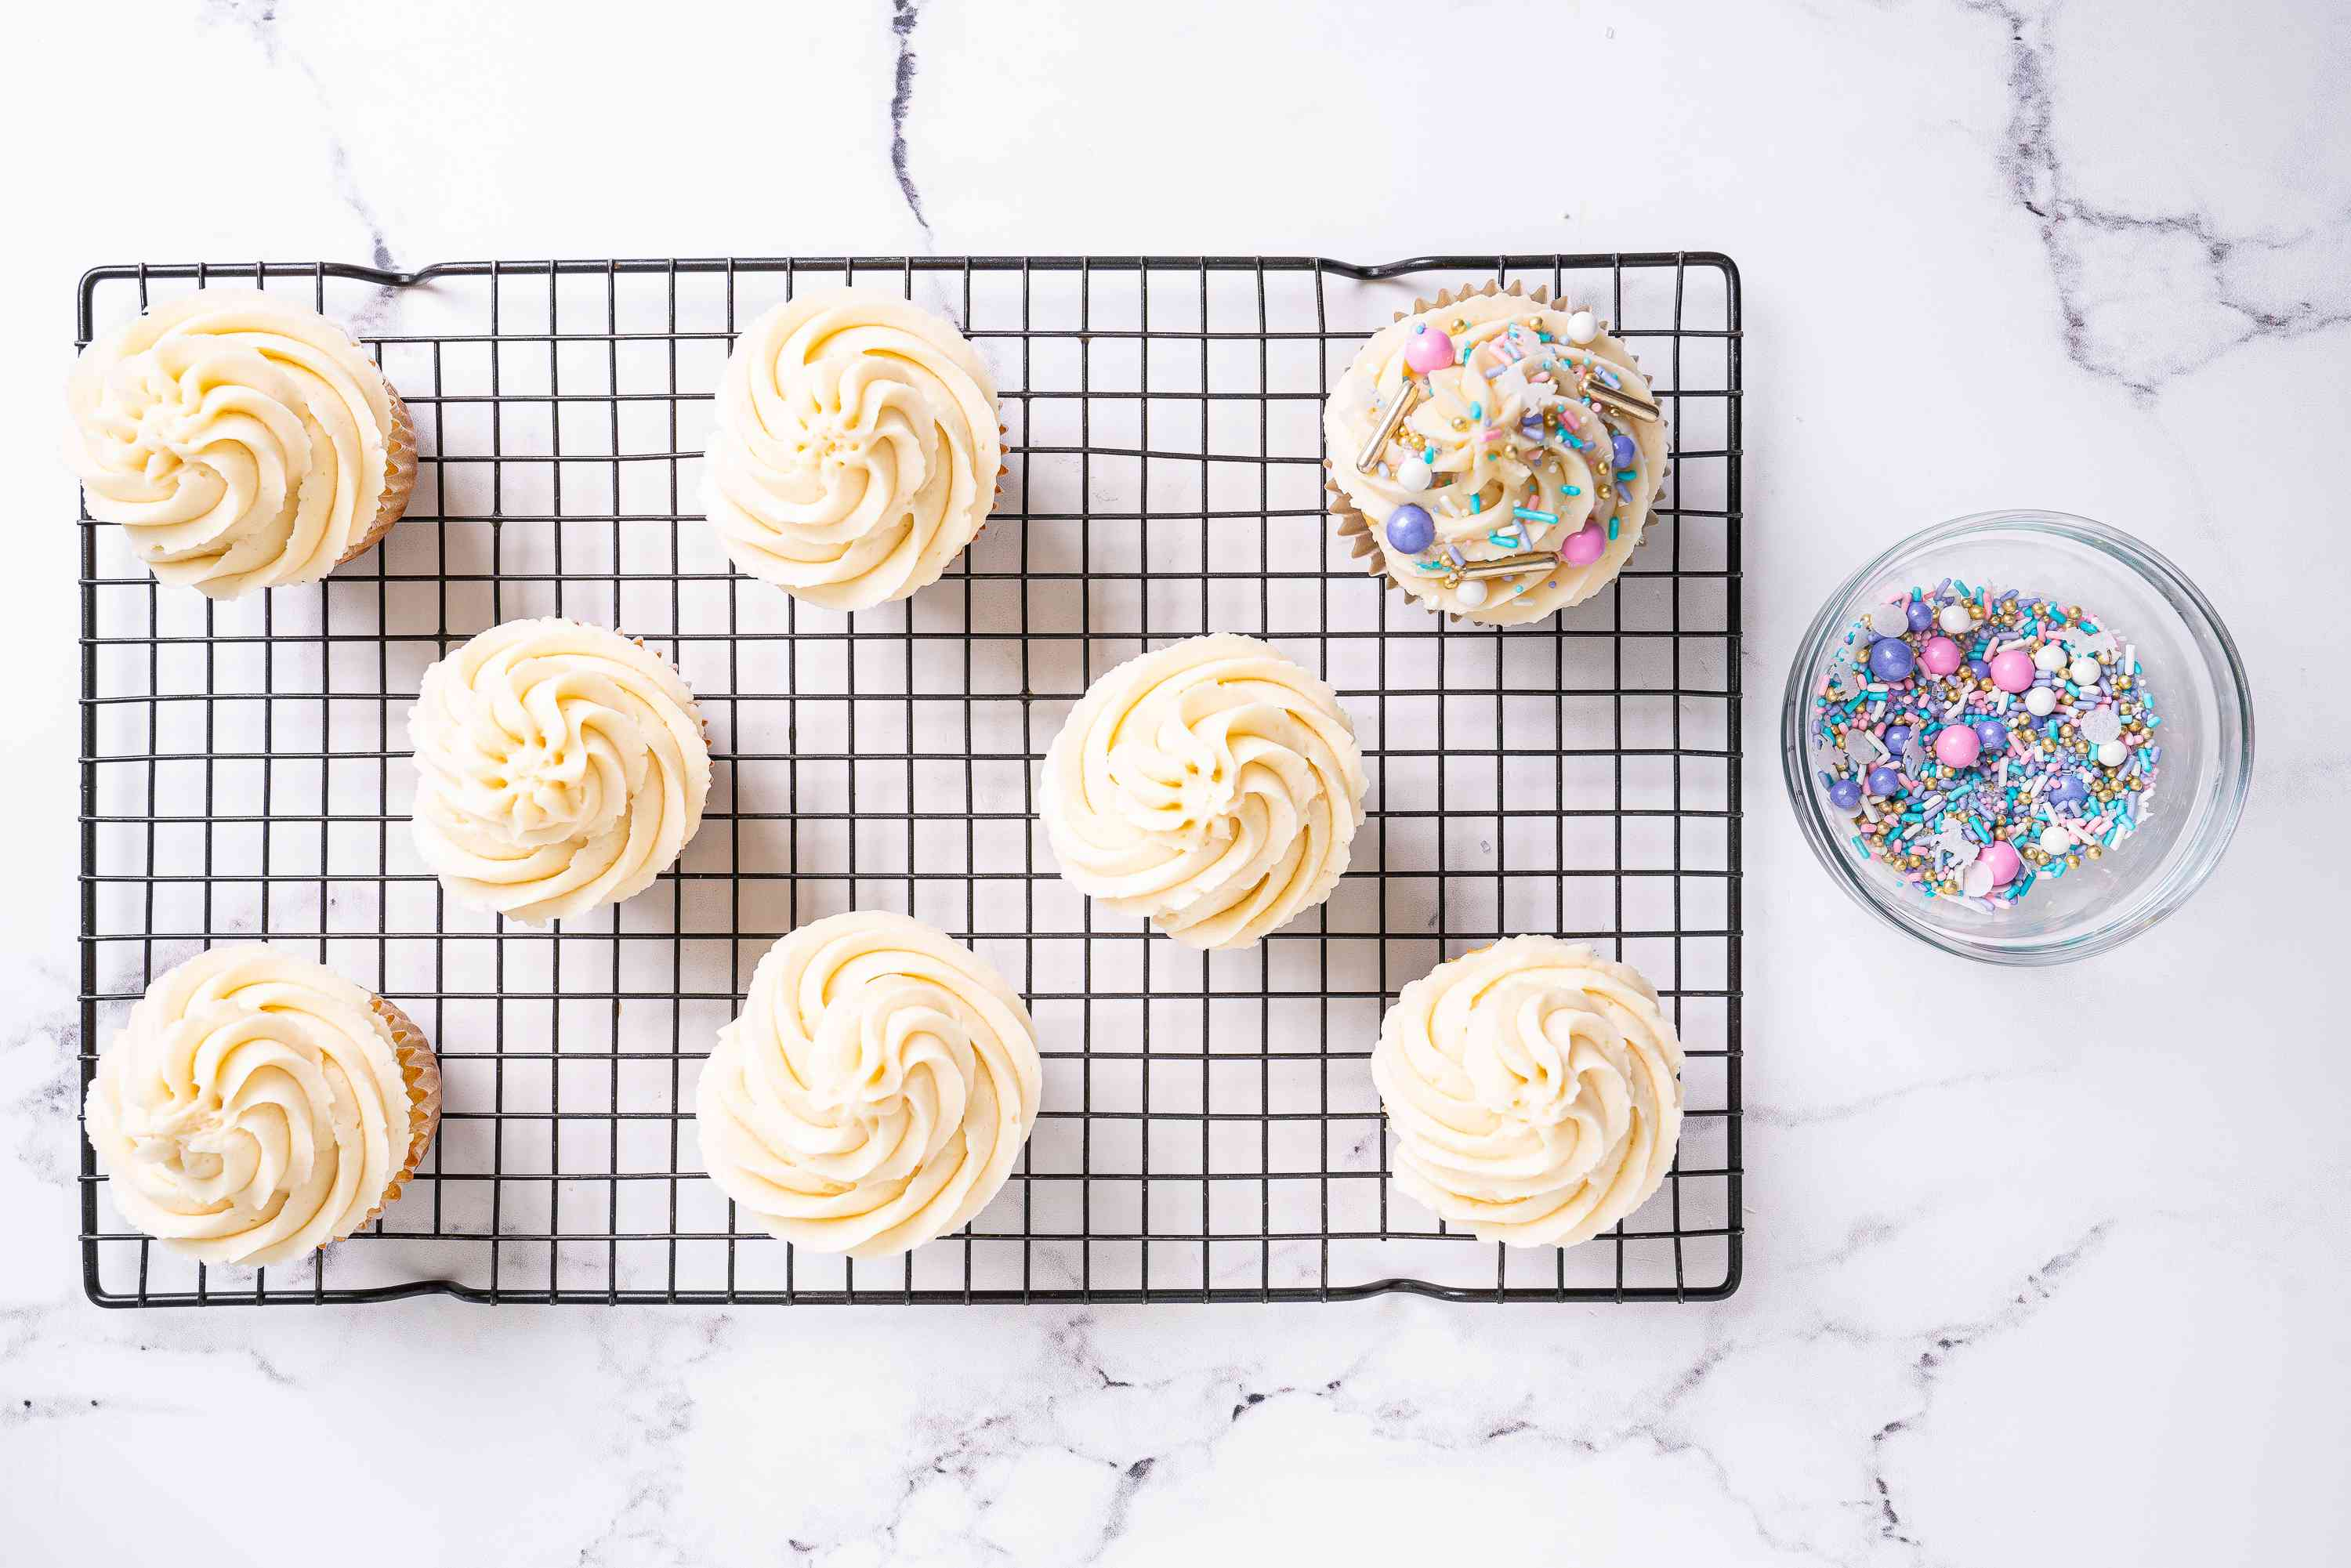 Adding sprinkles to the frosted cupcakes